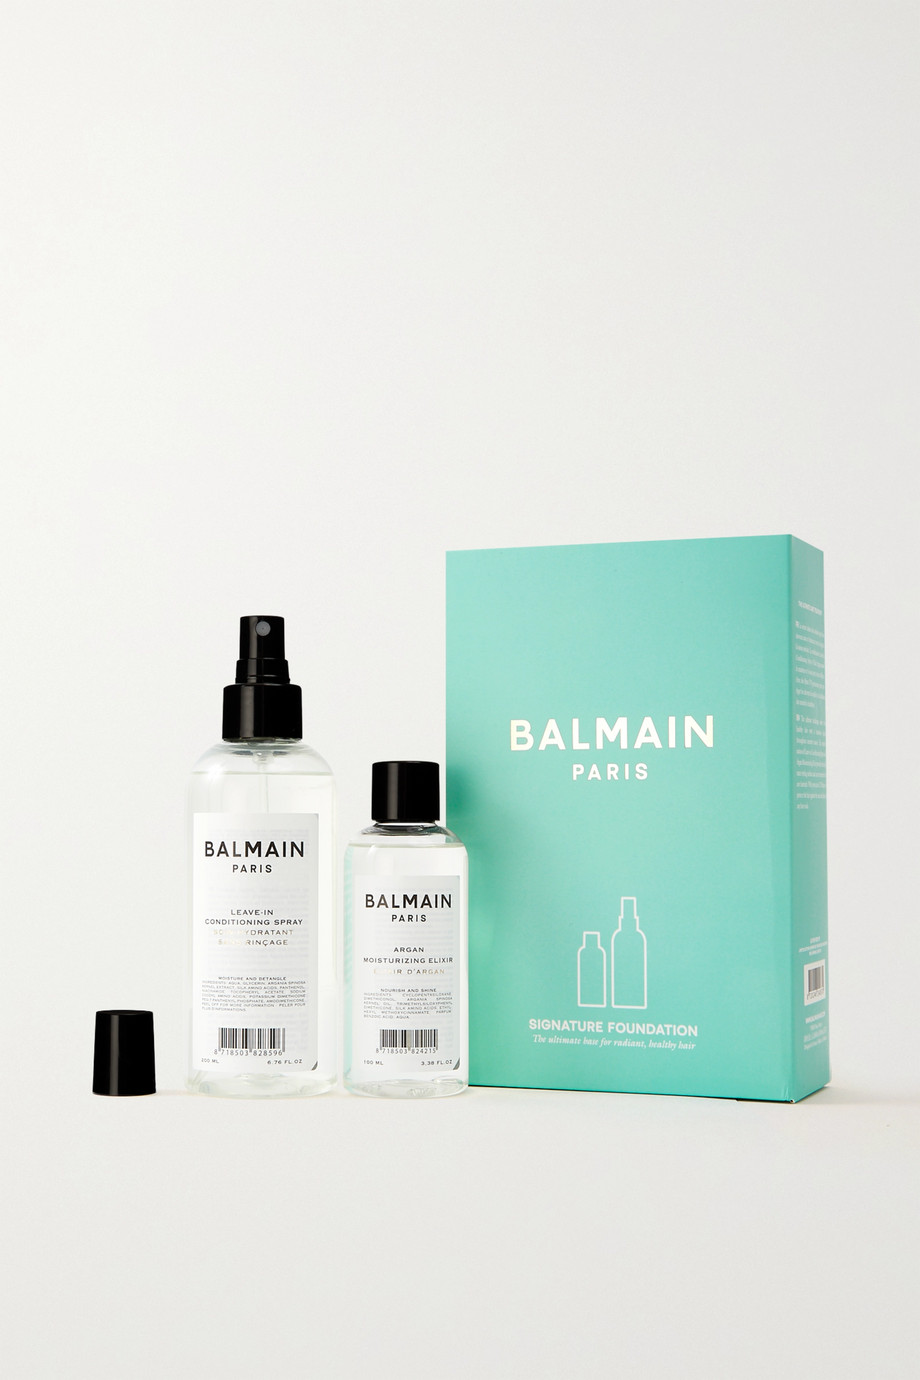 BALMAIN PARIS HAIR COUTURE Summer SS21 Signature Foundation Set